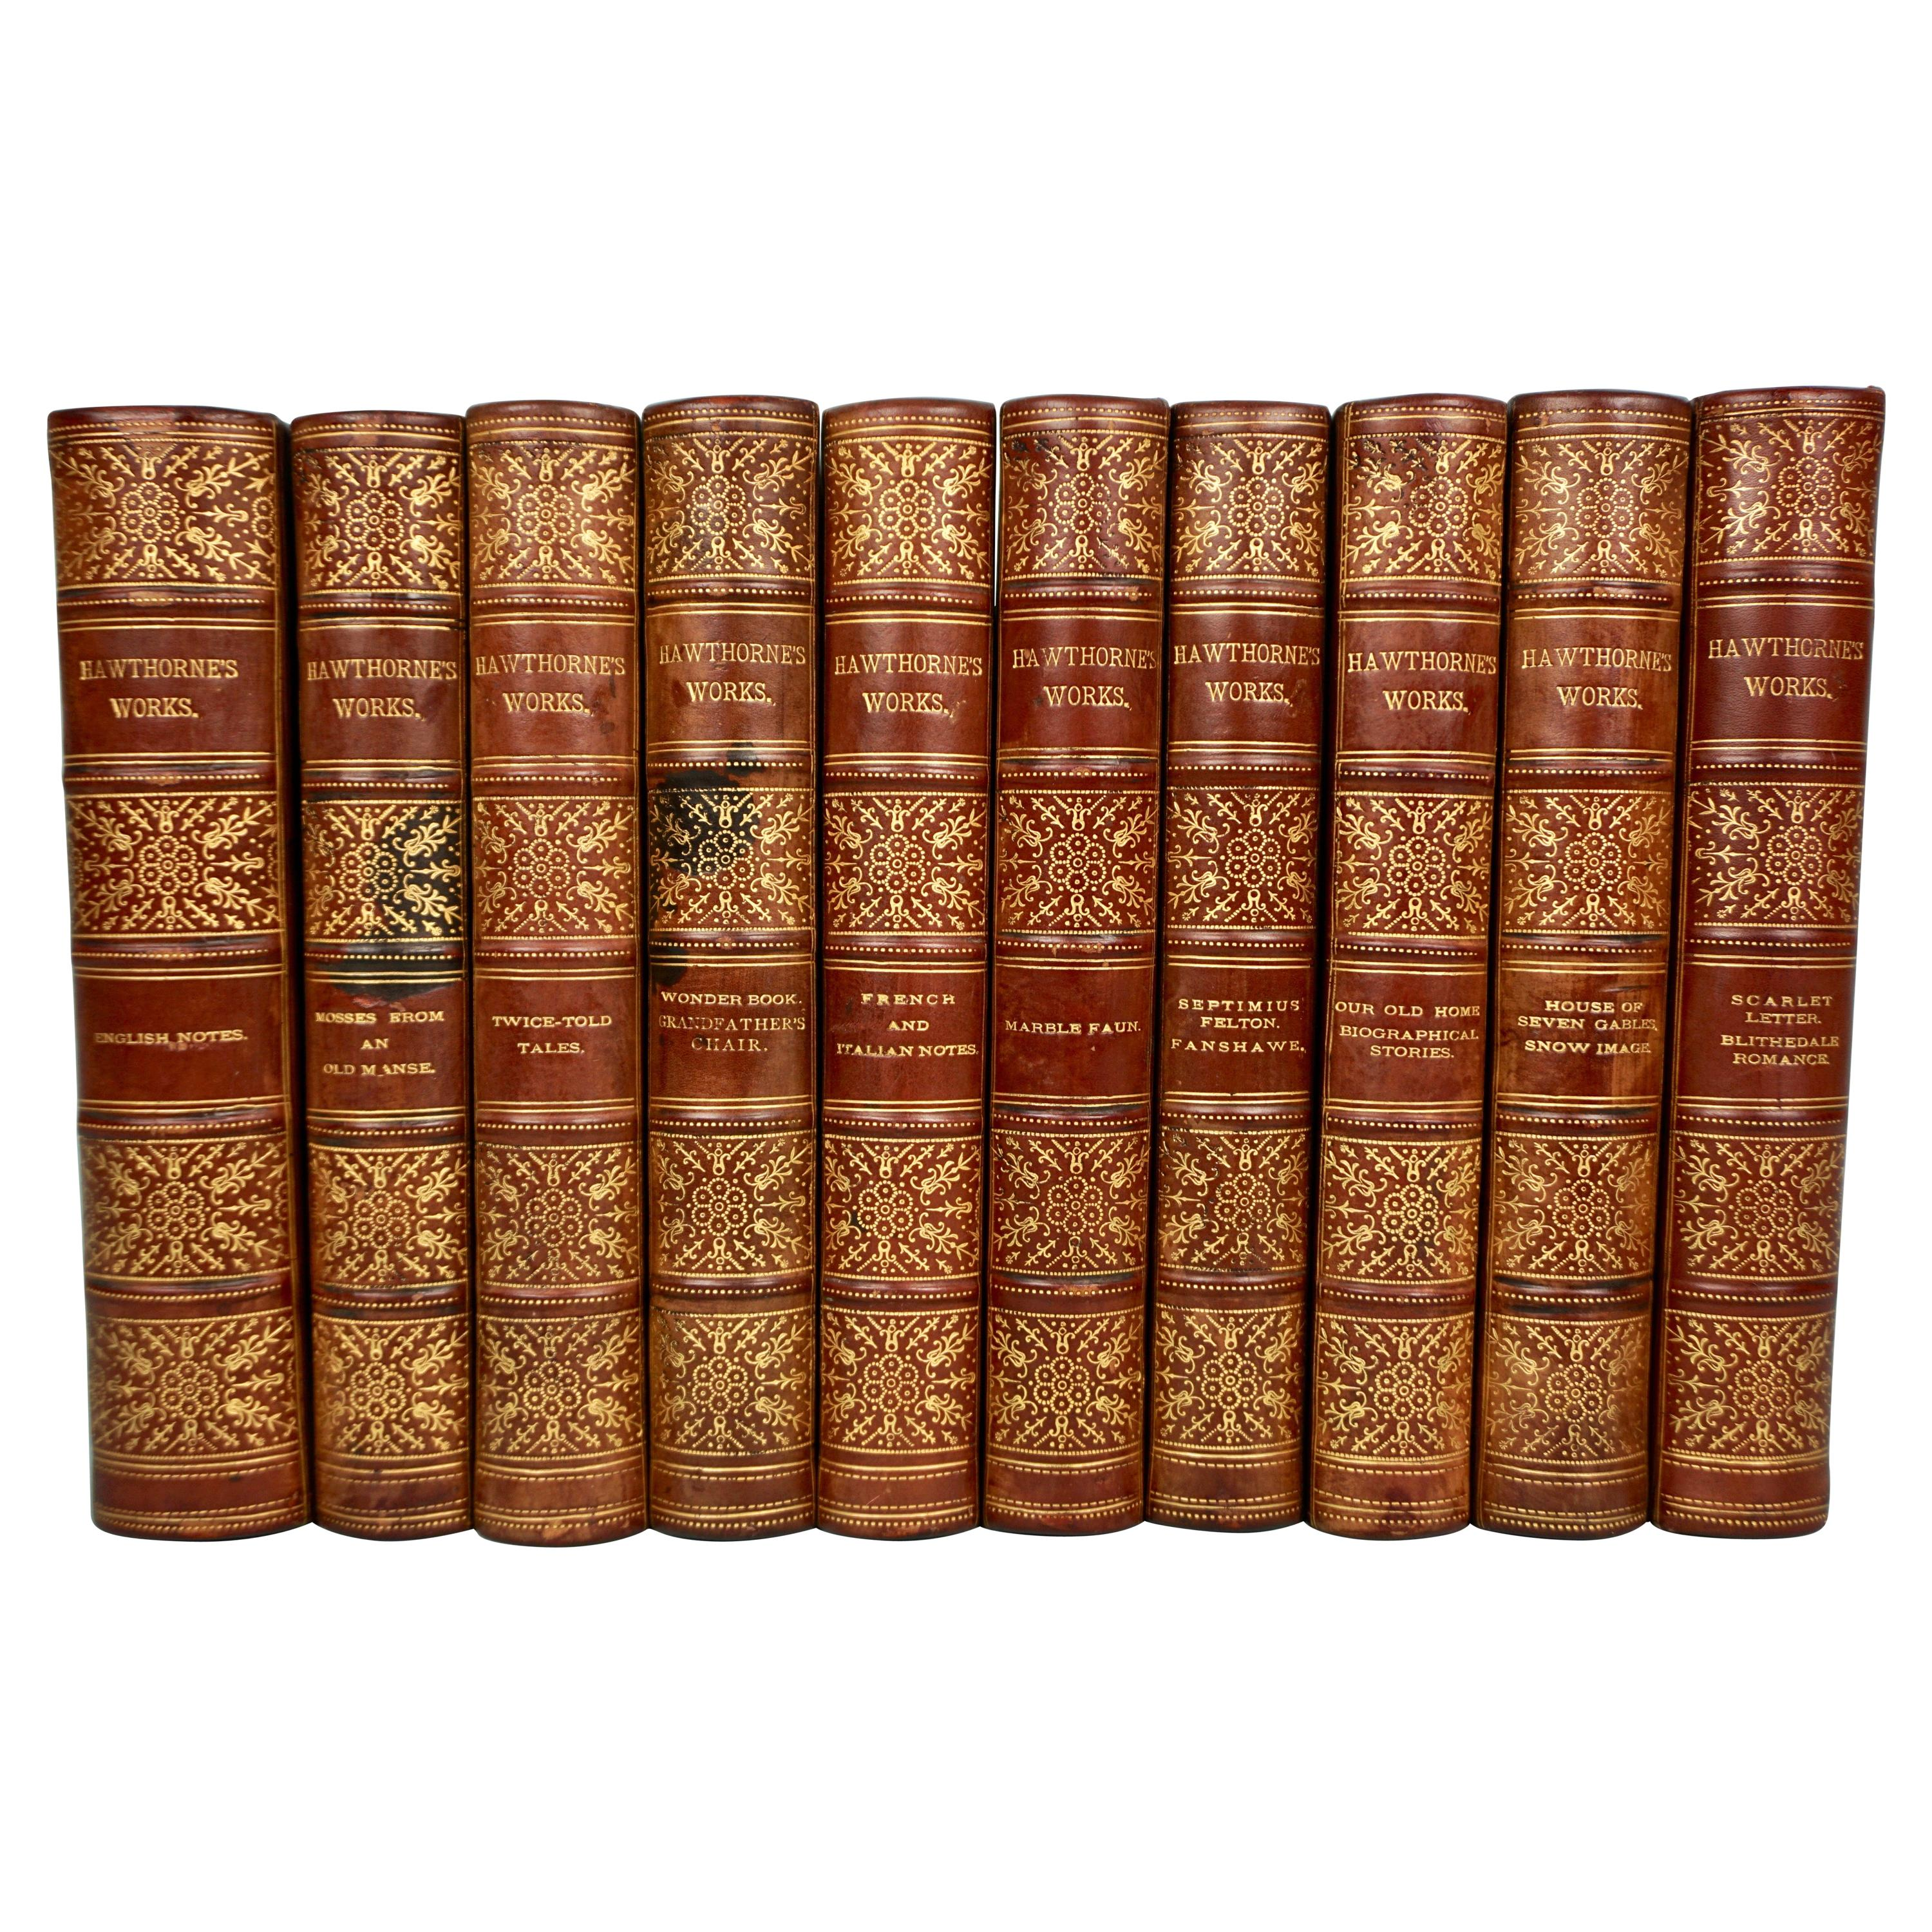 Works of Hawthorne in 10 Illustrated Gilt-Tooled Leather Bound Volumes